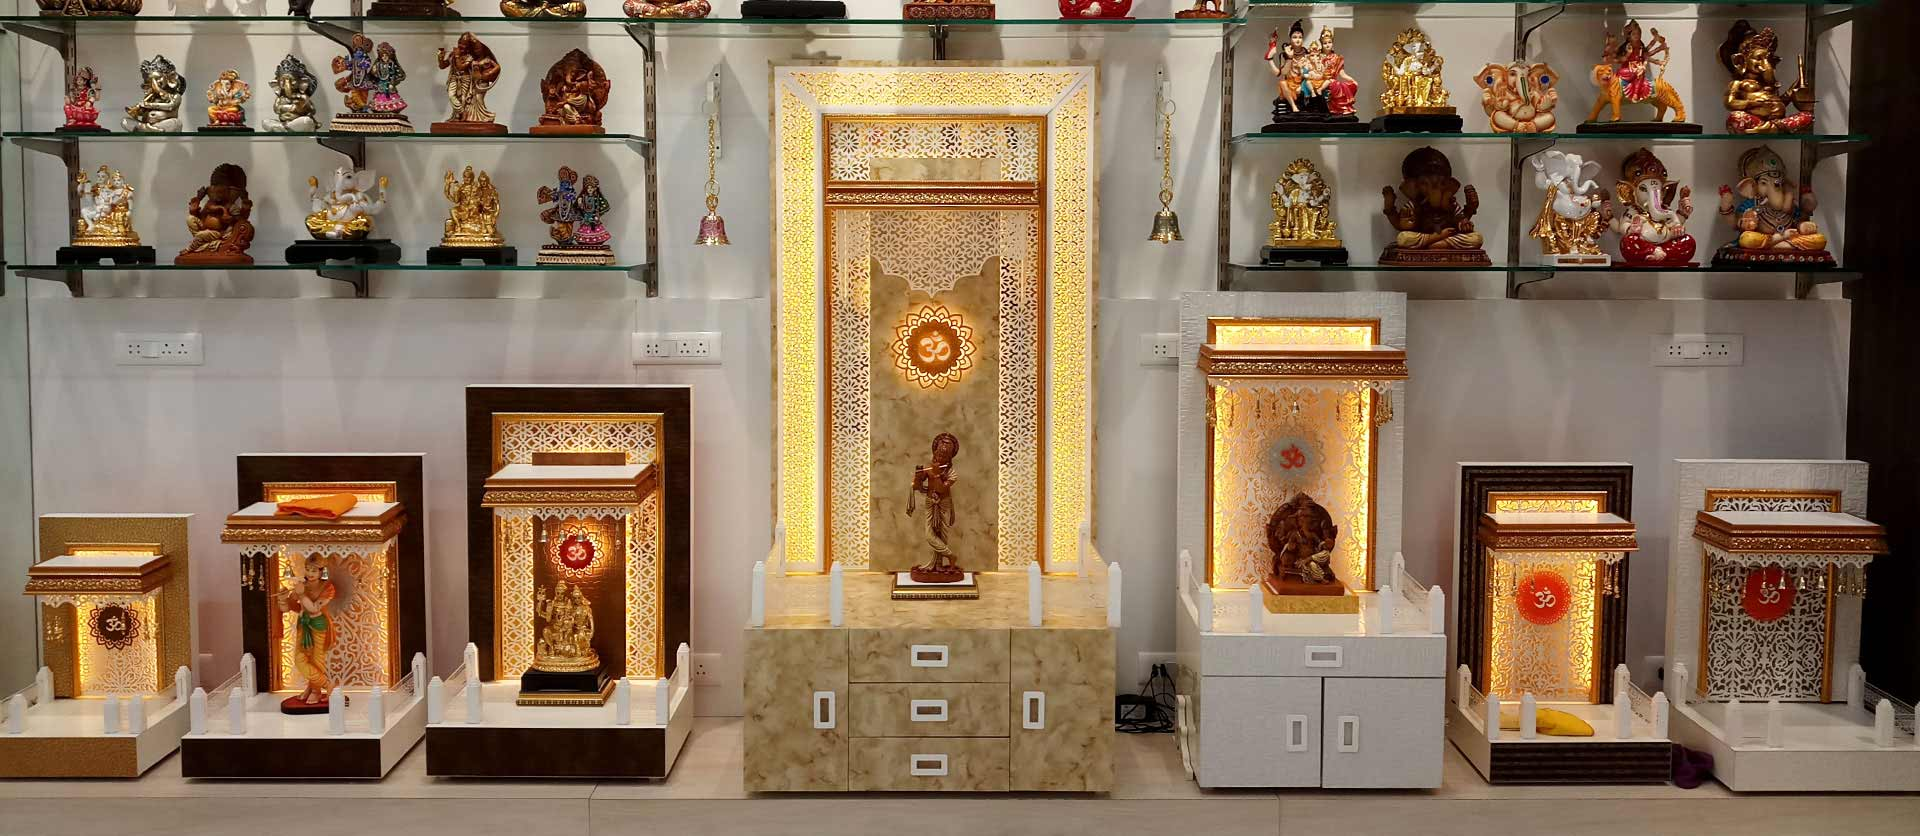 The mandir store designer wooden mandirs home mandirs for Home mandir designs marble